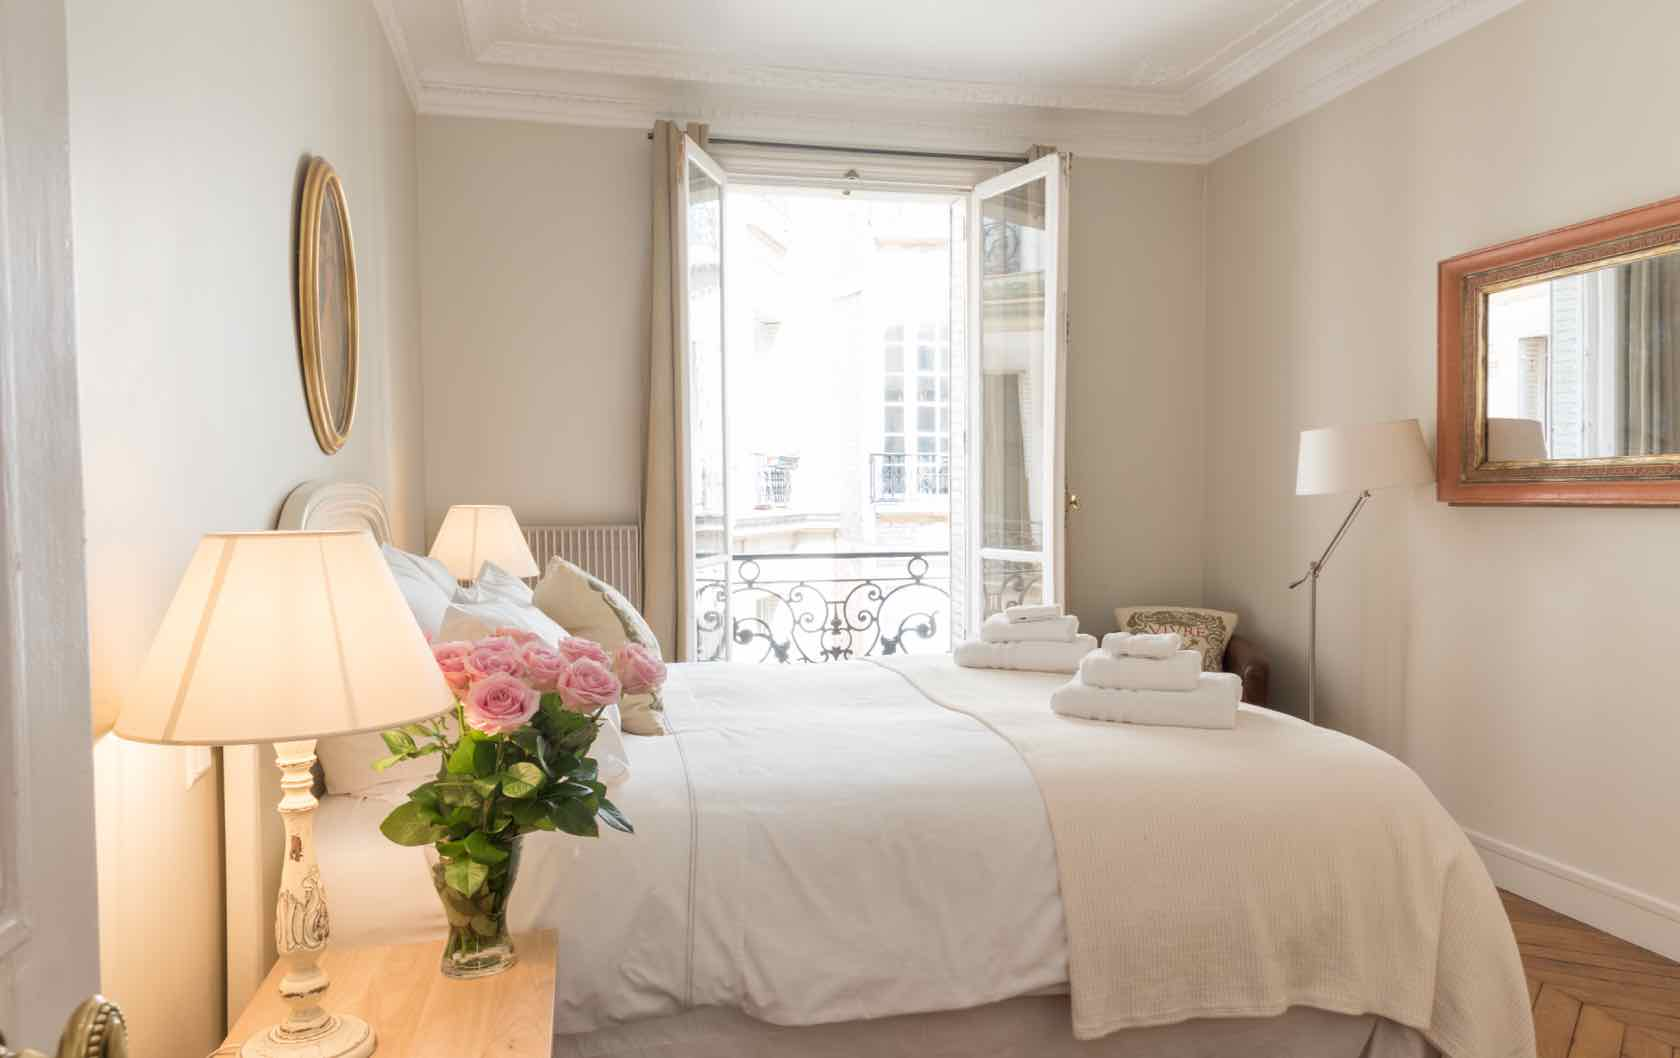 See our Long-Term Furnished Rentals in Paris by Gamay Apartment Gamay